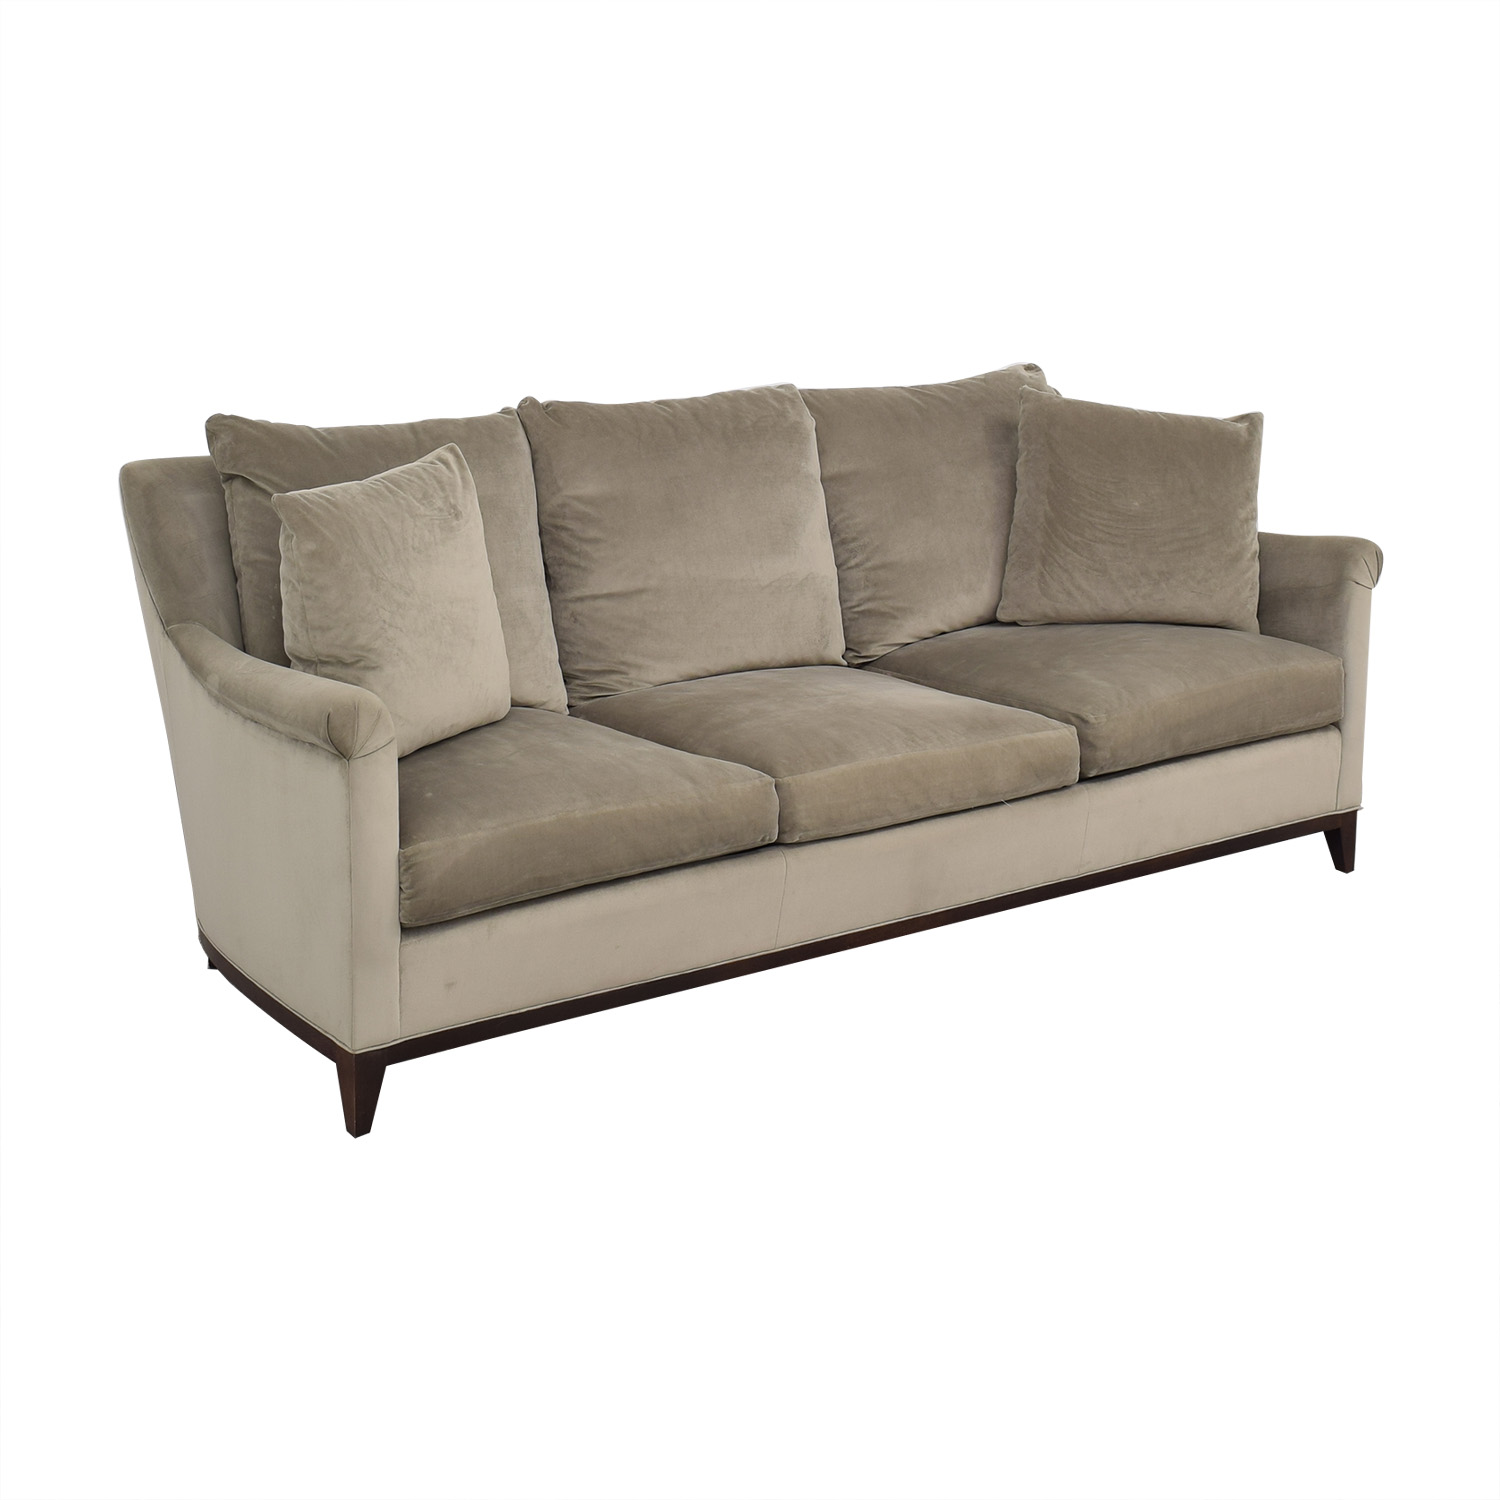 Safavieh Safavieh Roll Arm Velvet Sofa nj